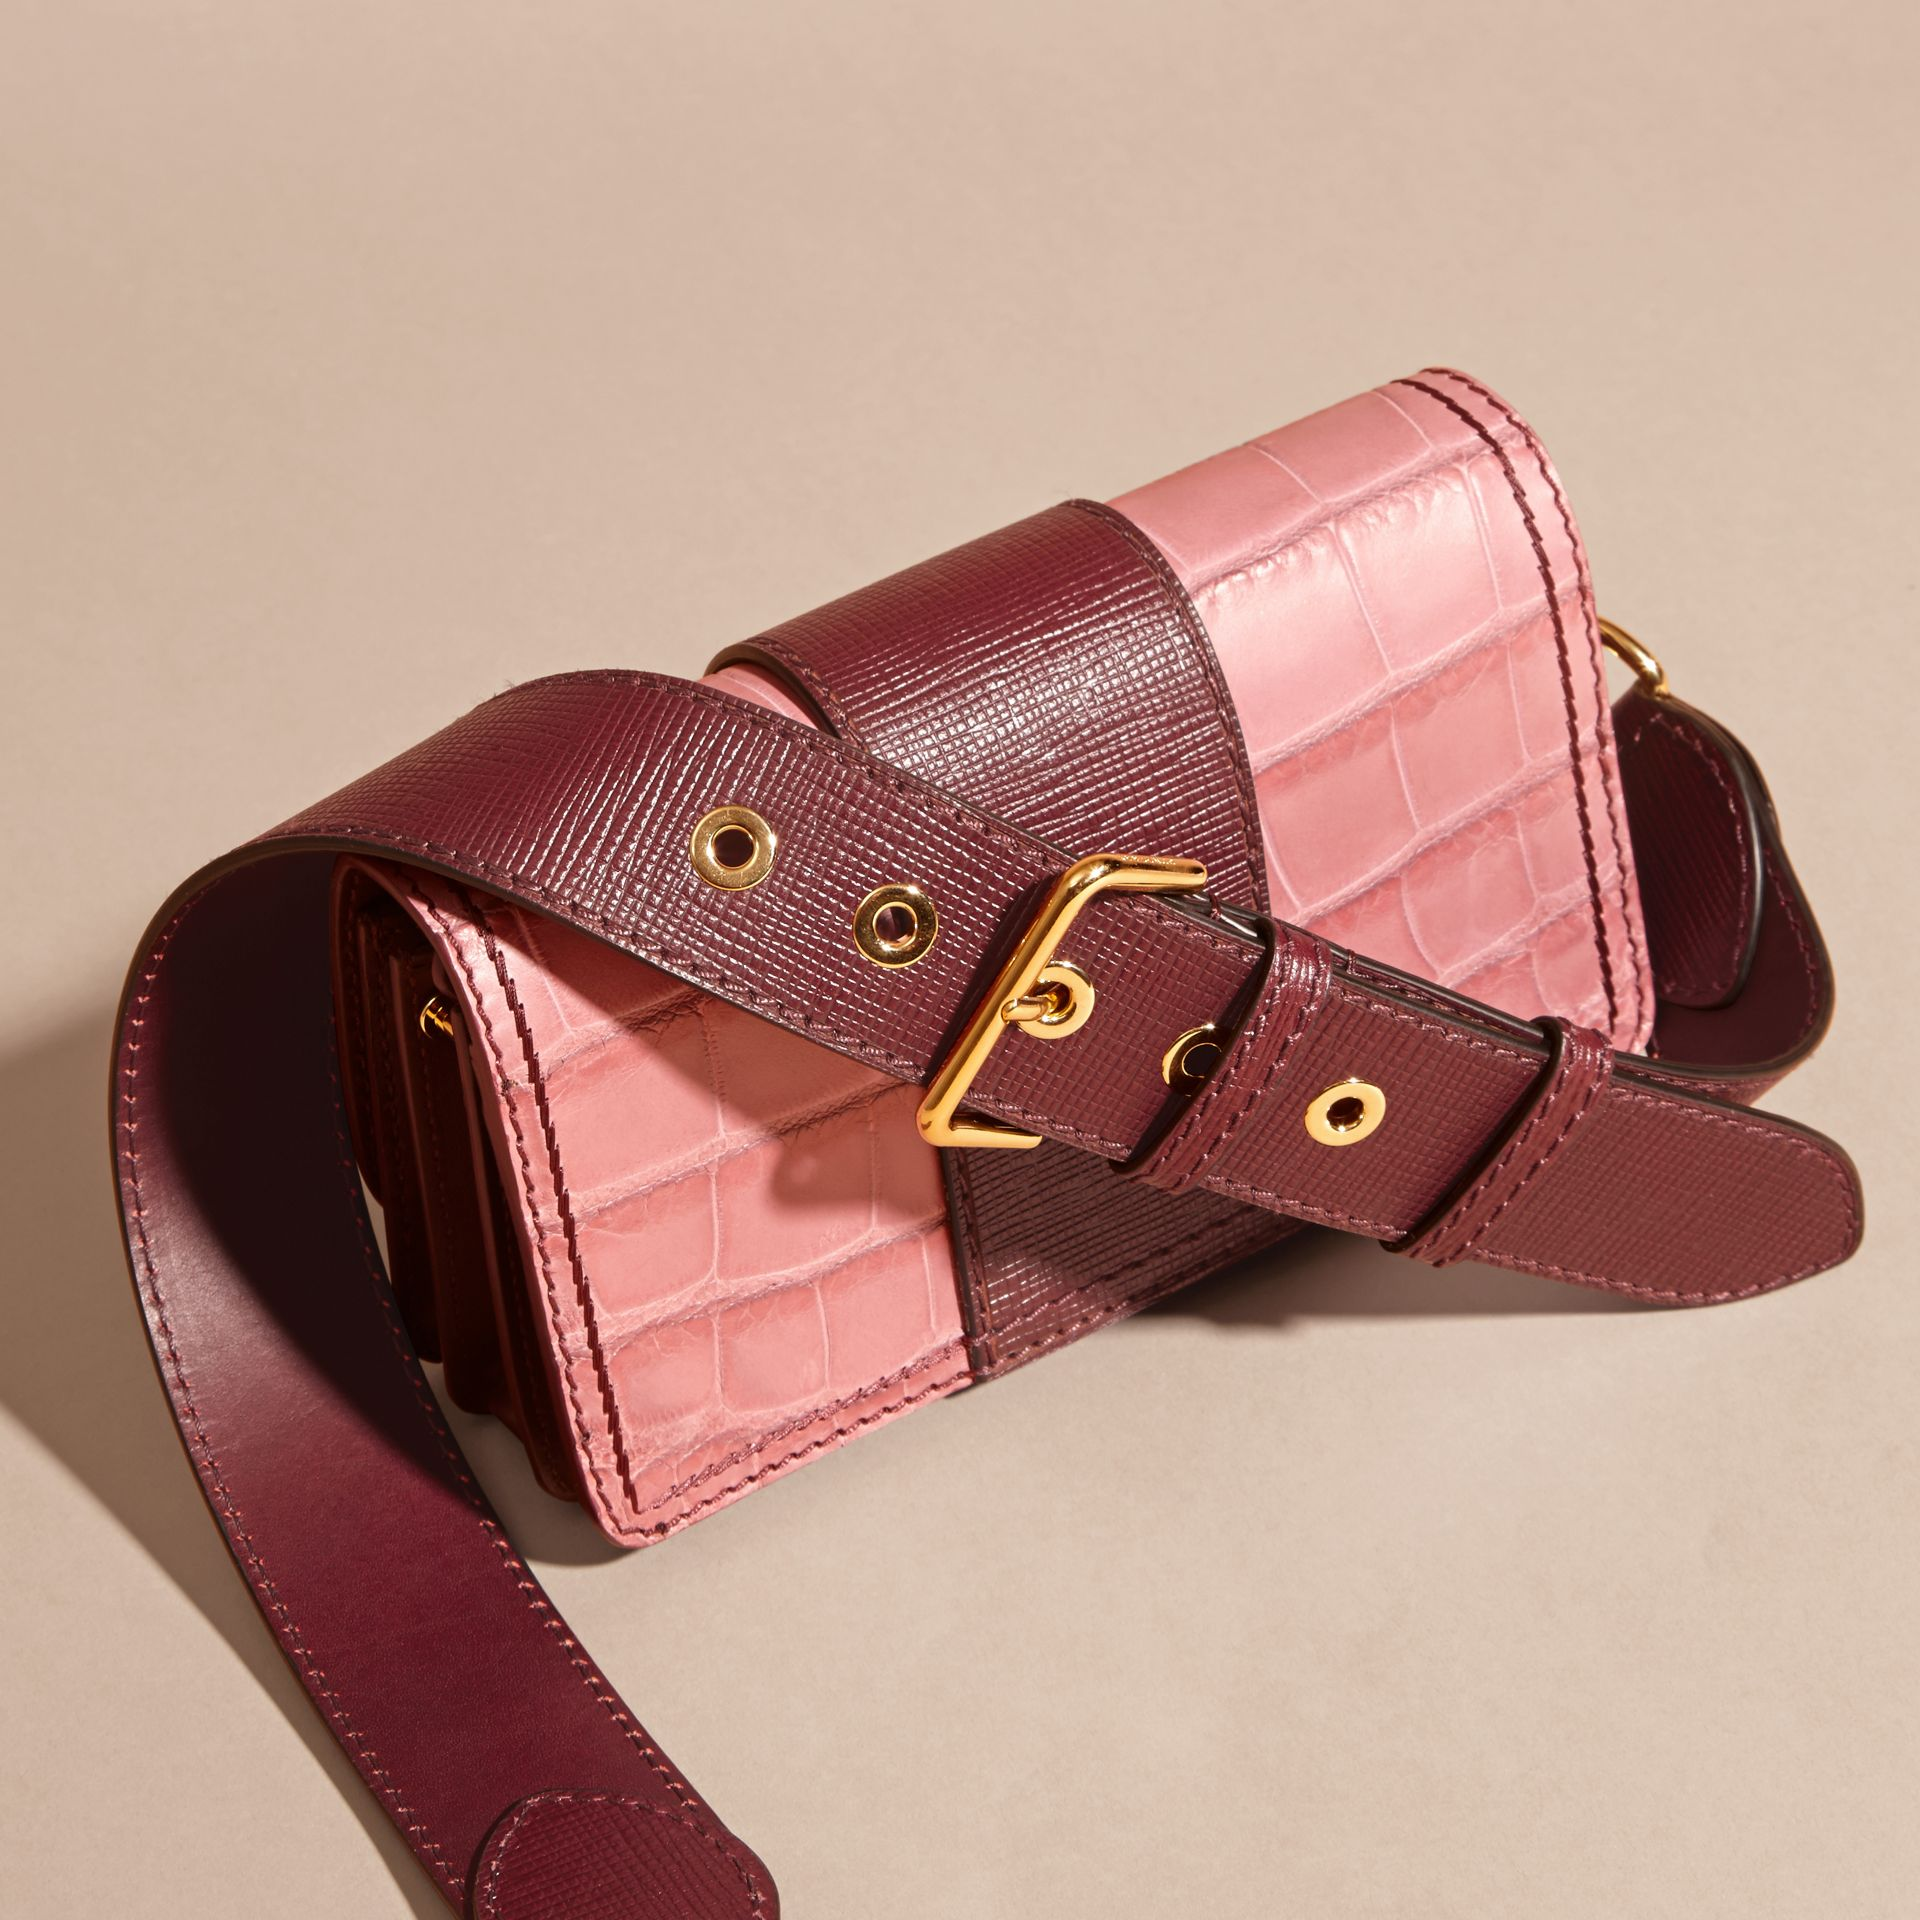 The Small Buckle Bag in Alligator and Leather in Dusky Pink/ Burgundy - Women | Burberry United Kingdom - gallery image 5